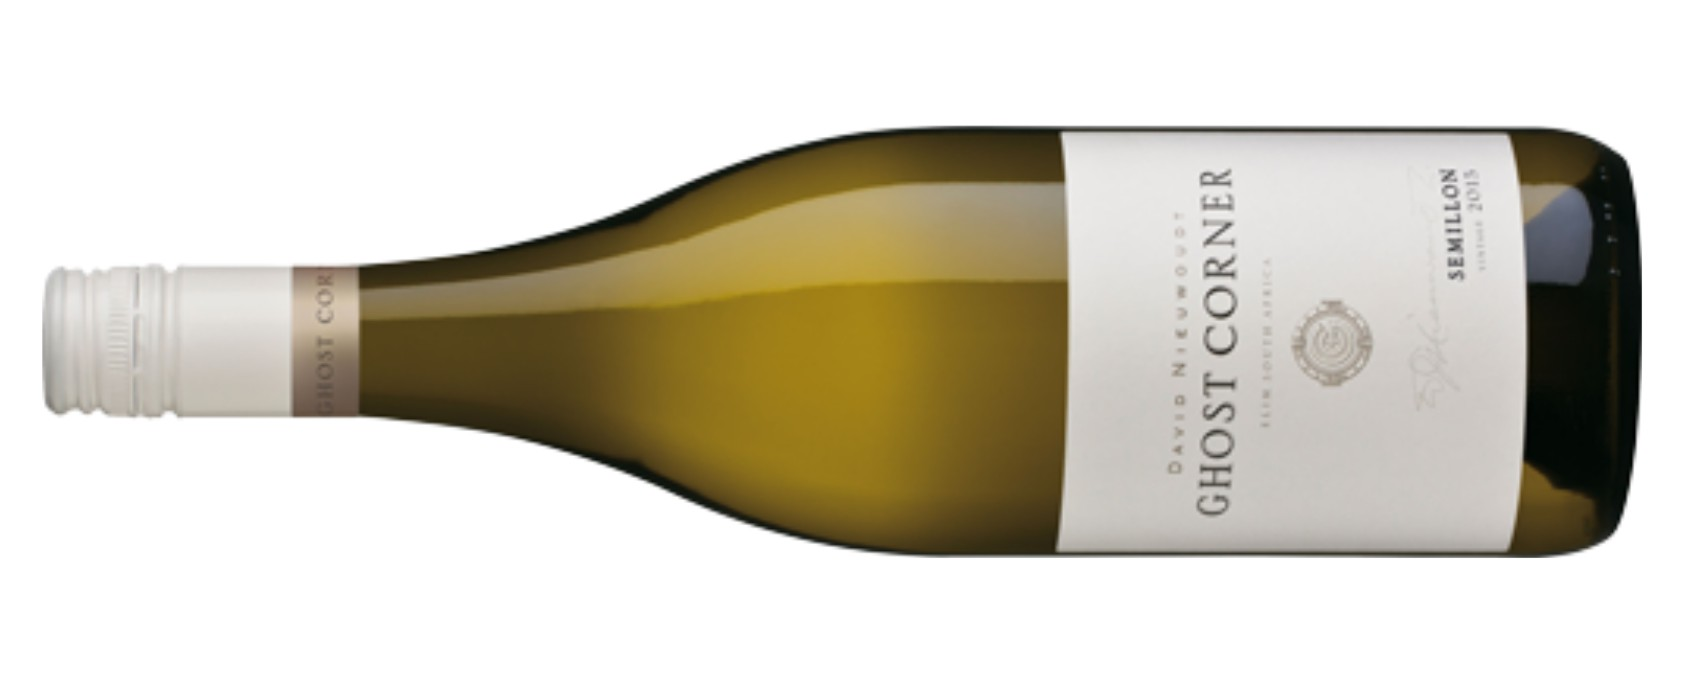 Cederberg Private Cellar Ghost Corner Semillon 2015